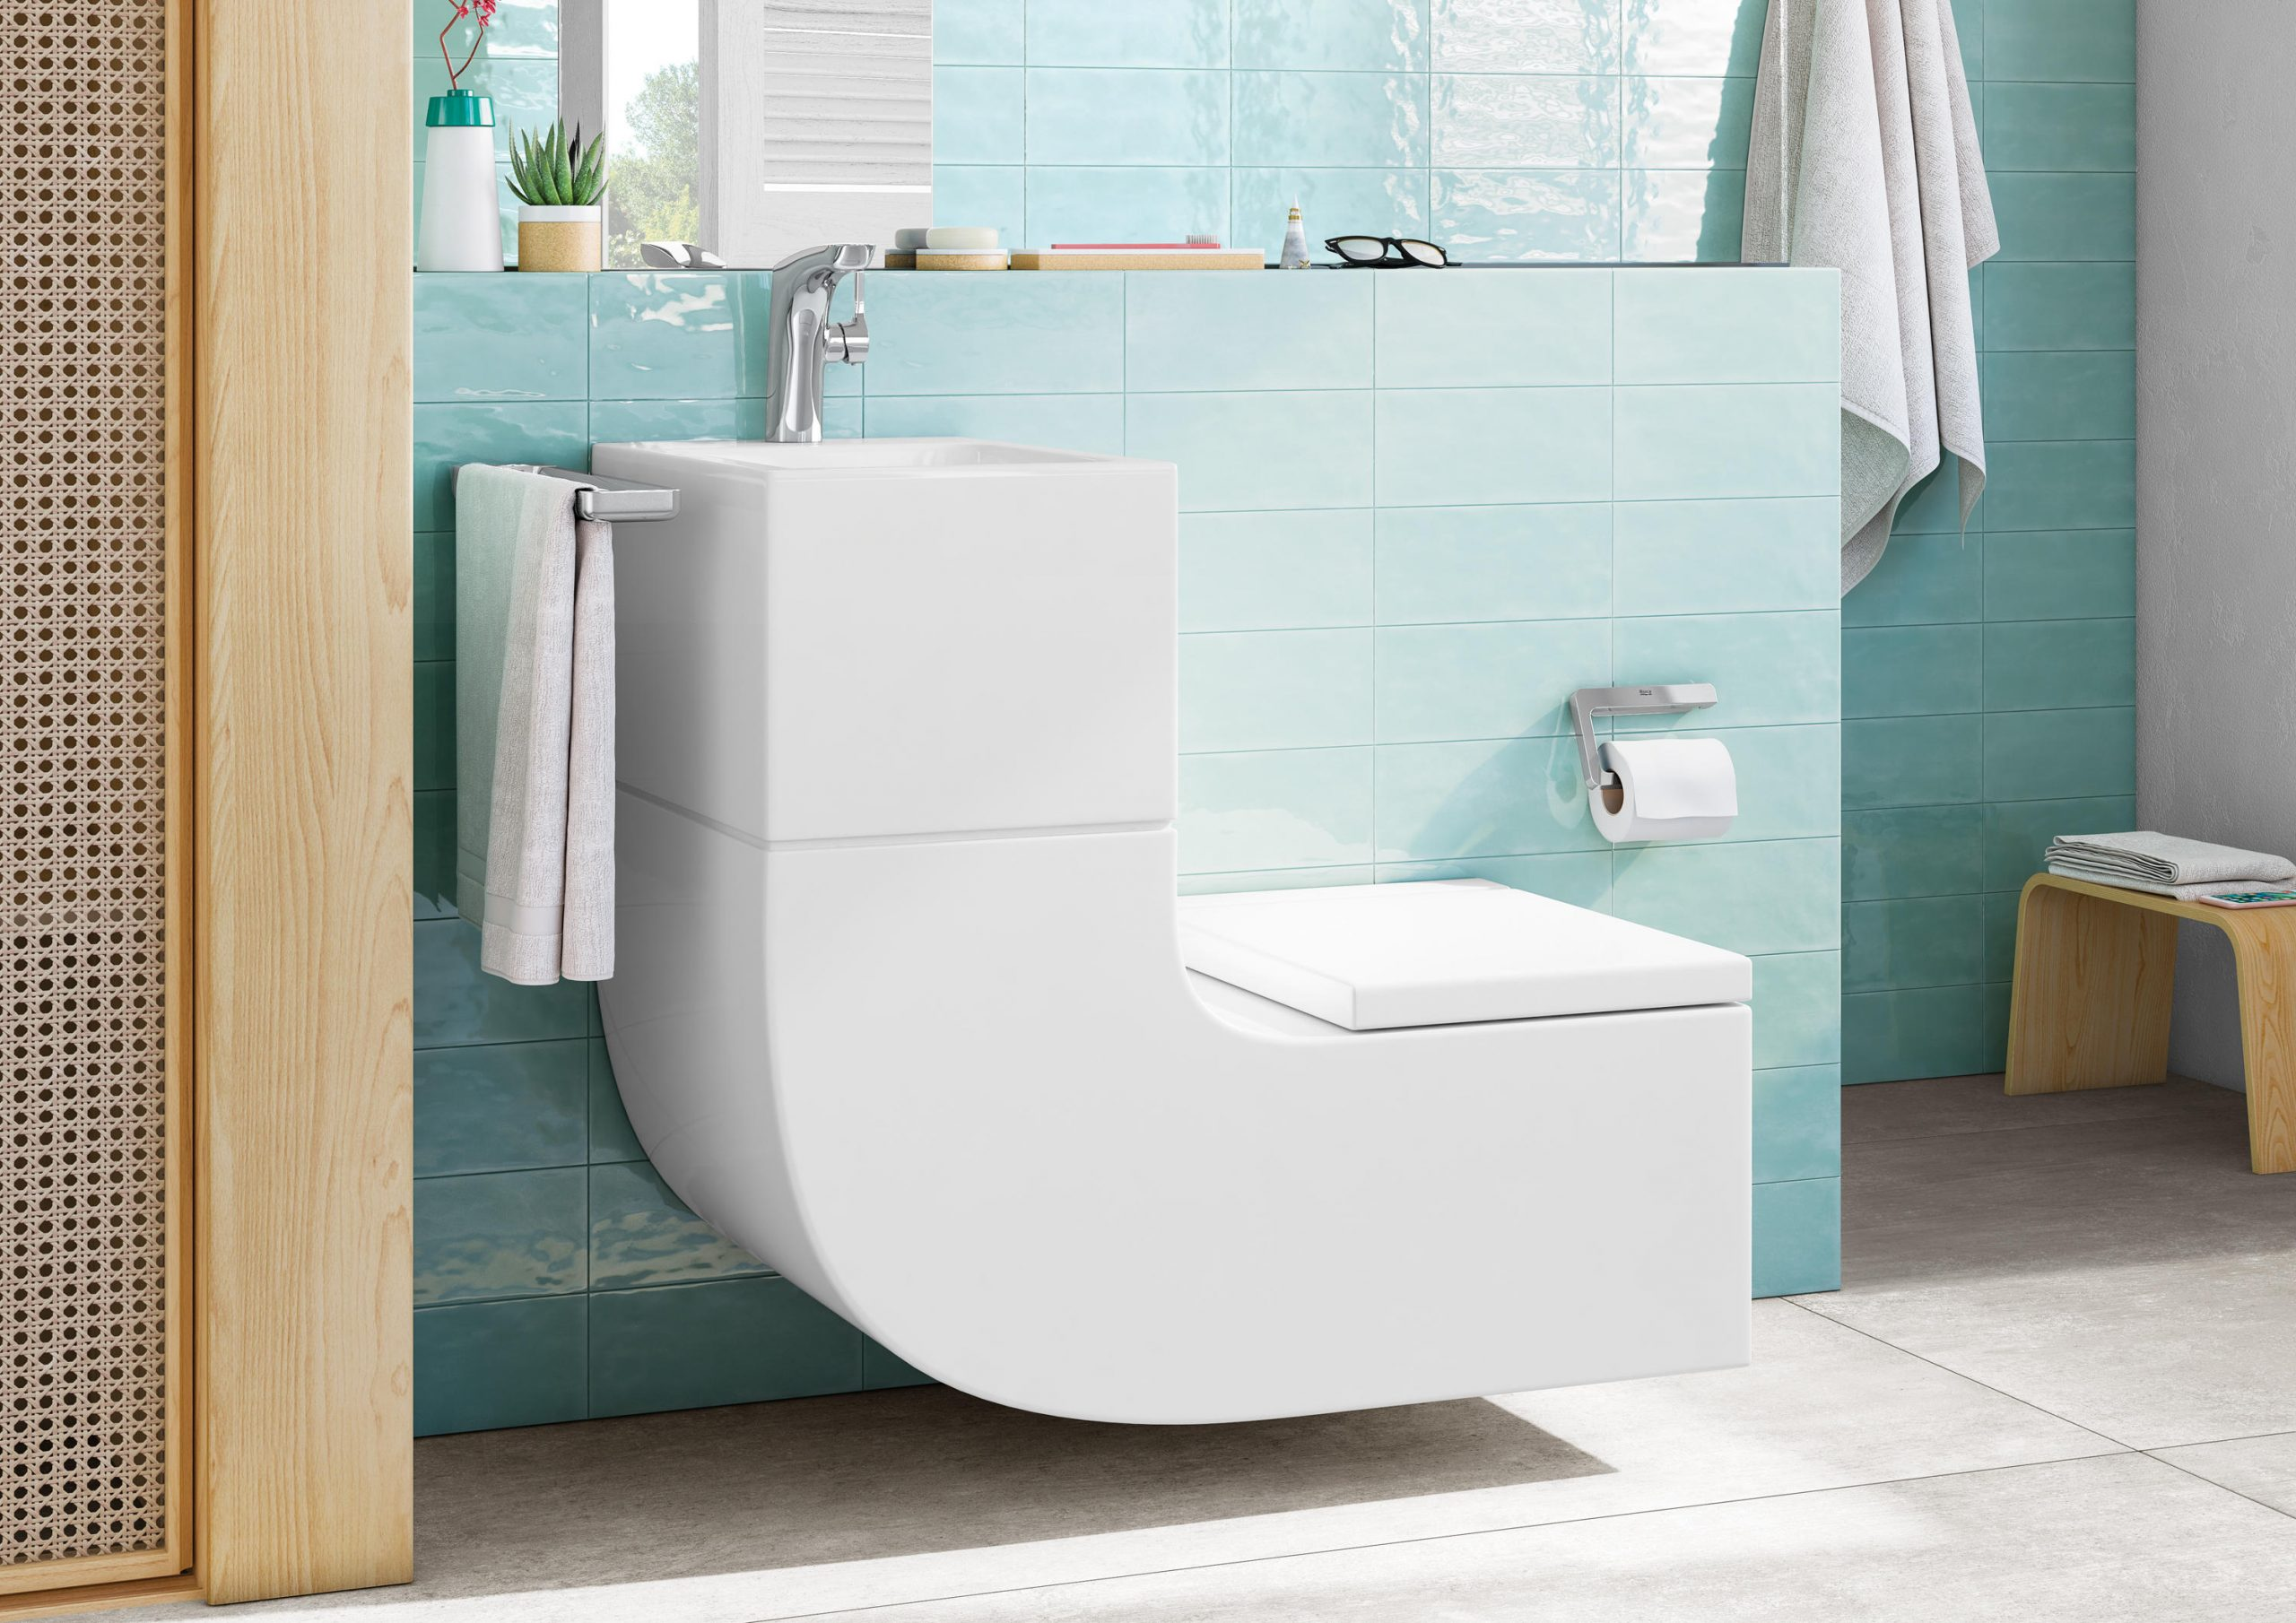 Benefits of Toilet Sink Combos